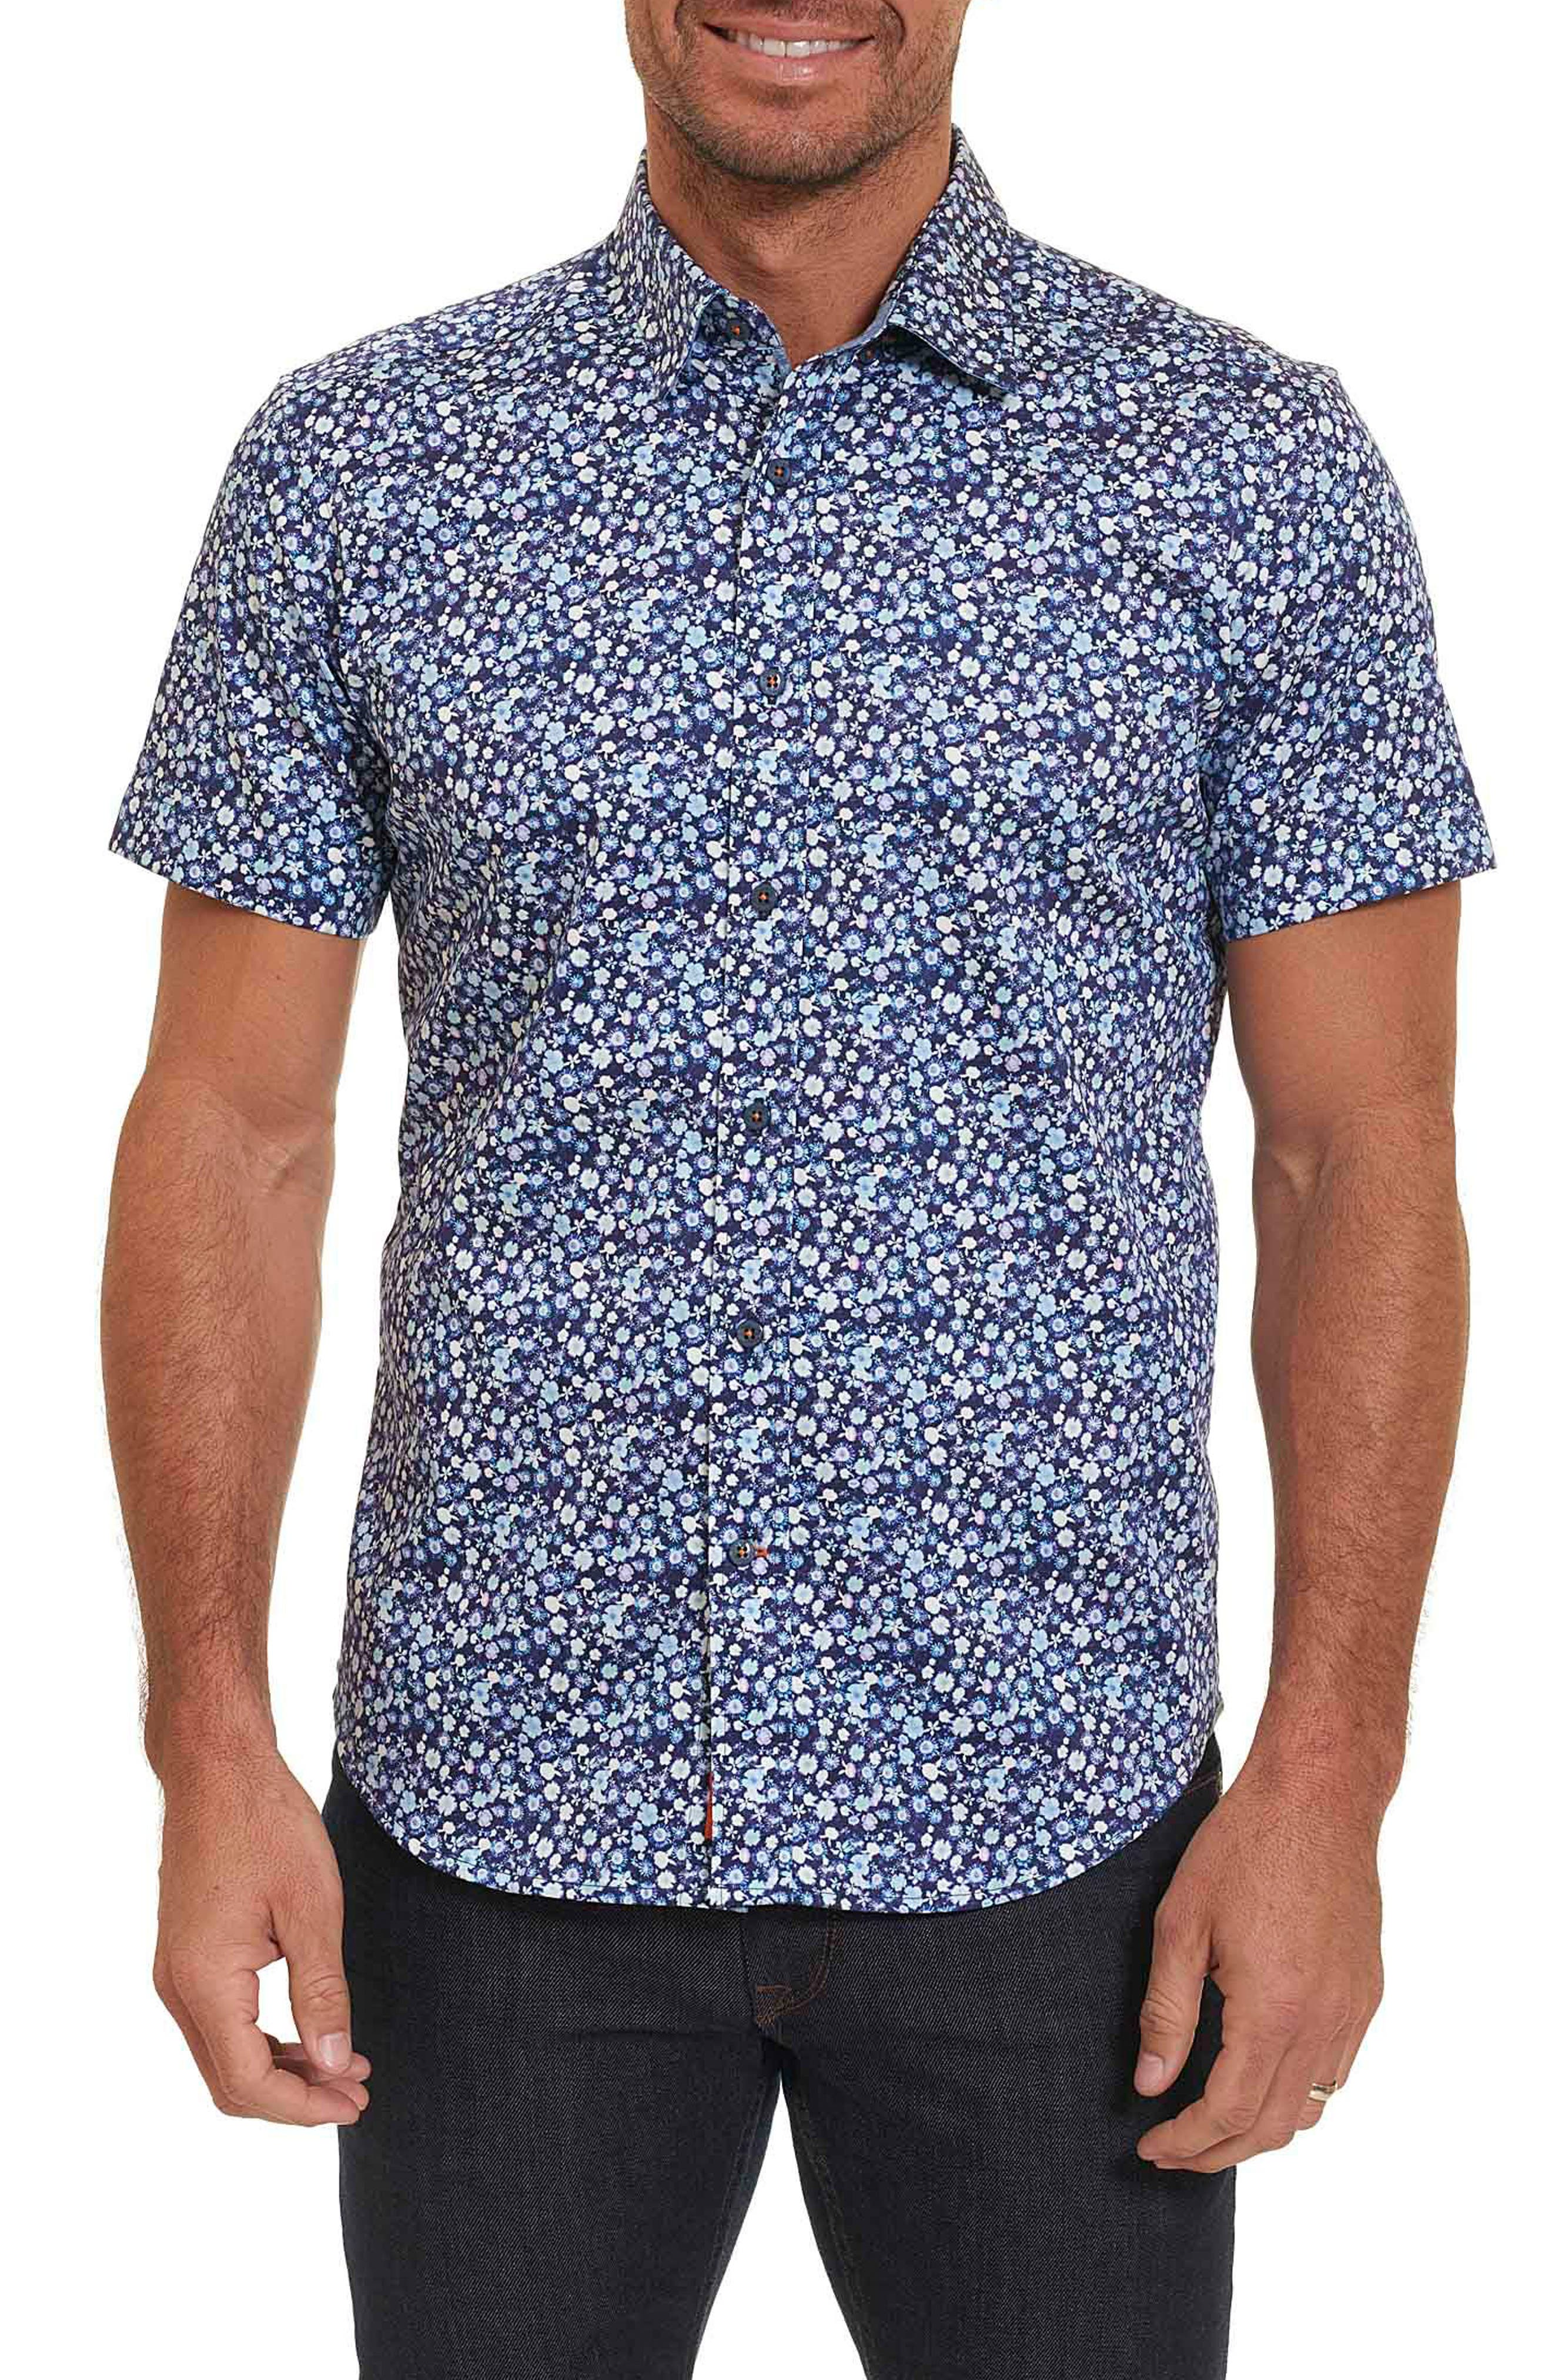 Bronson Tailored Fit Print Short Sleeve Sport Shirt,                             Main thumbnail 1, color,                             400